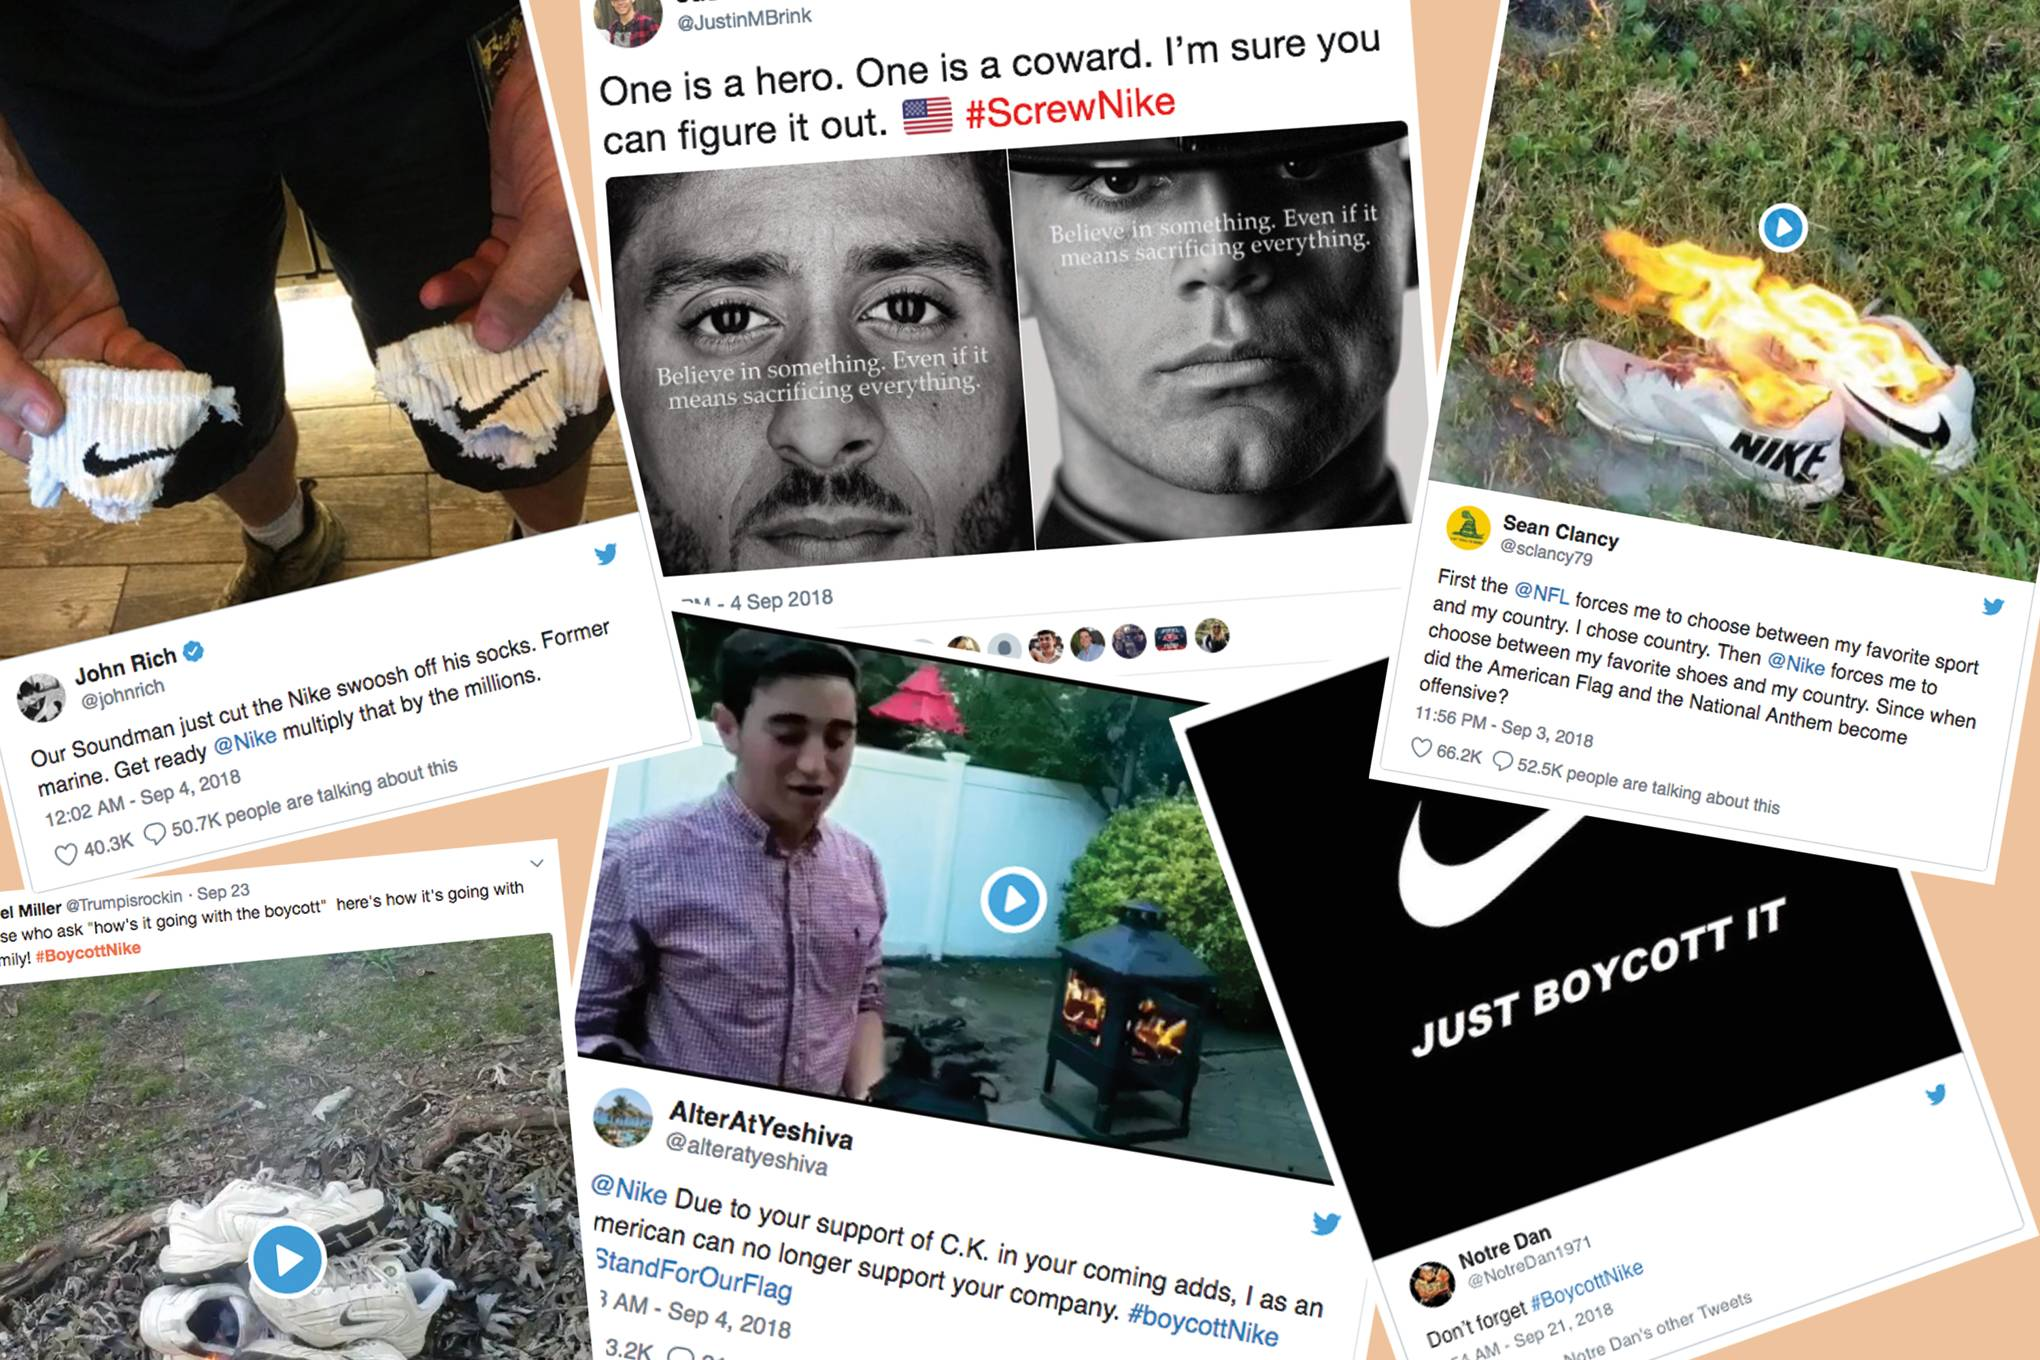 Here's proof that Russian-backed accounts pushed the Nike boycott